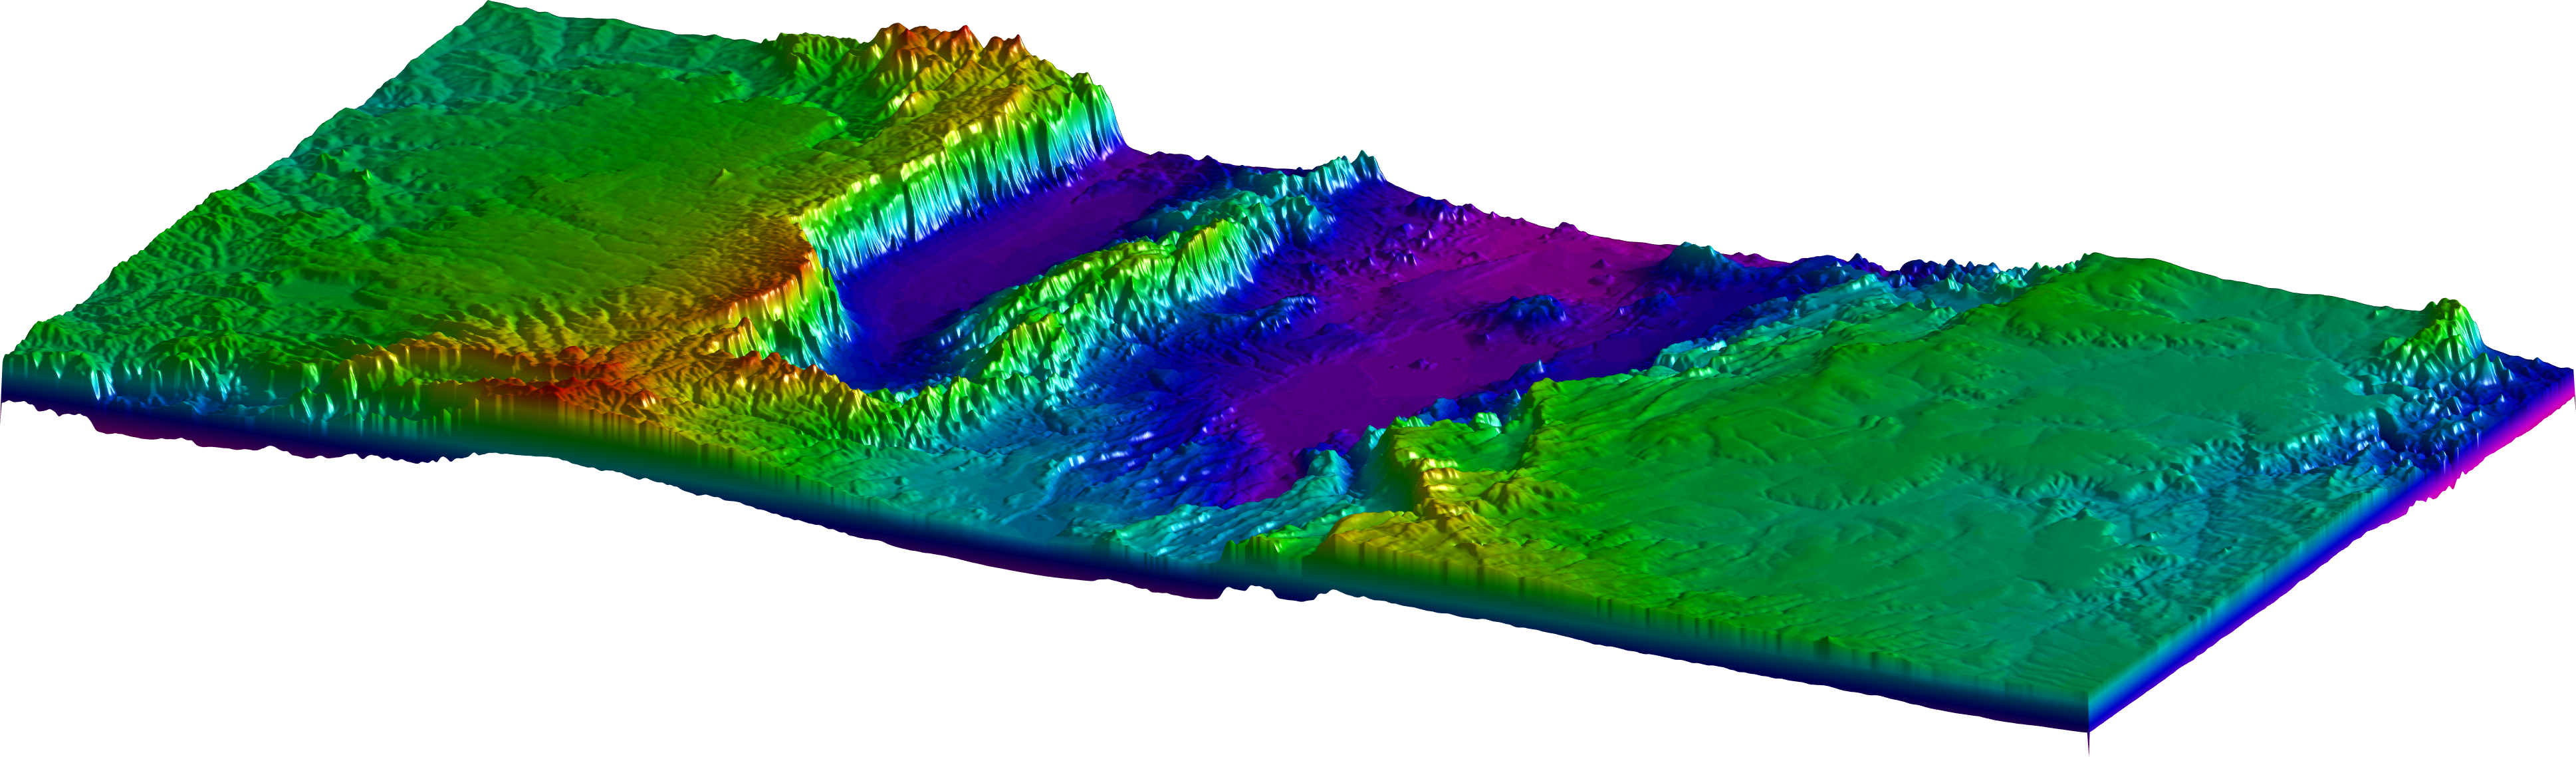 Merging SRTM Files in MATLAB – MATLAB Recipes for Earth Sciences